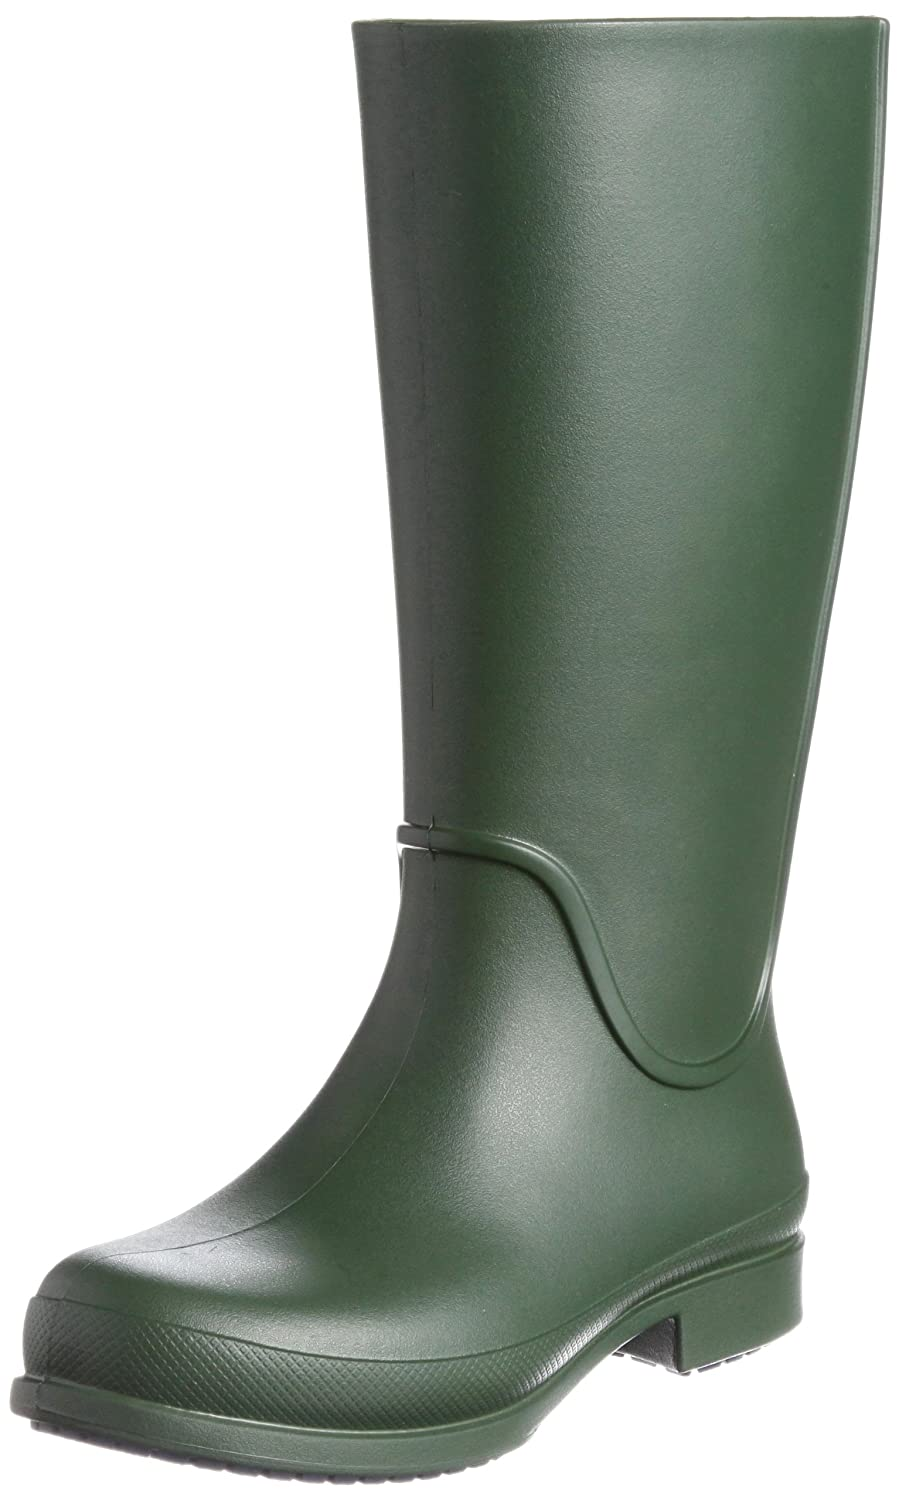 Crocs Womens Wellie Waterproof Rain Boot Shoes B007B851AI 6 B(M) US|Forest / Navy